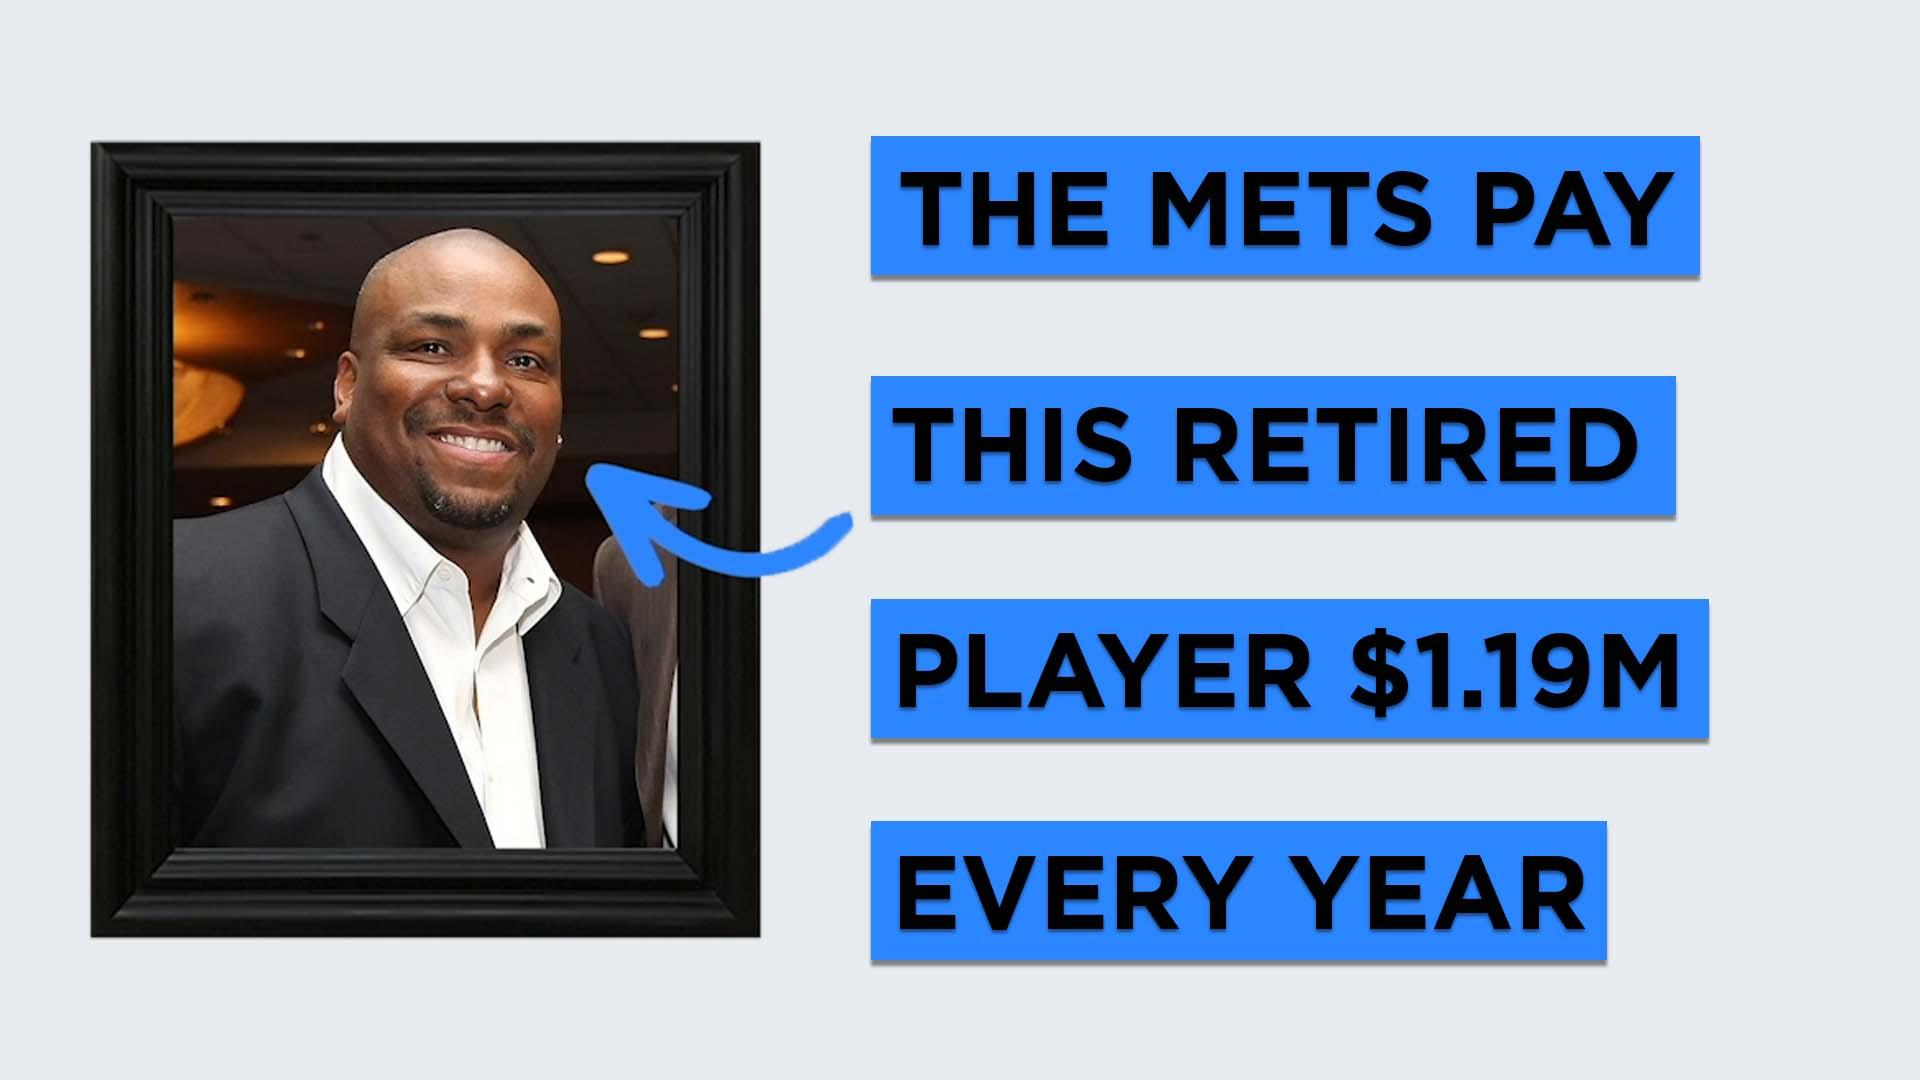 The New York Mets write a check to this retired player $1.19 million every year